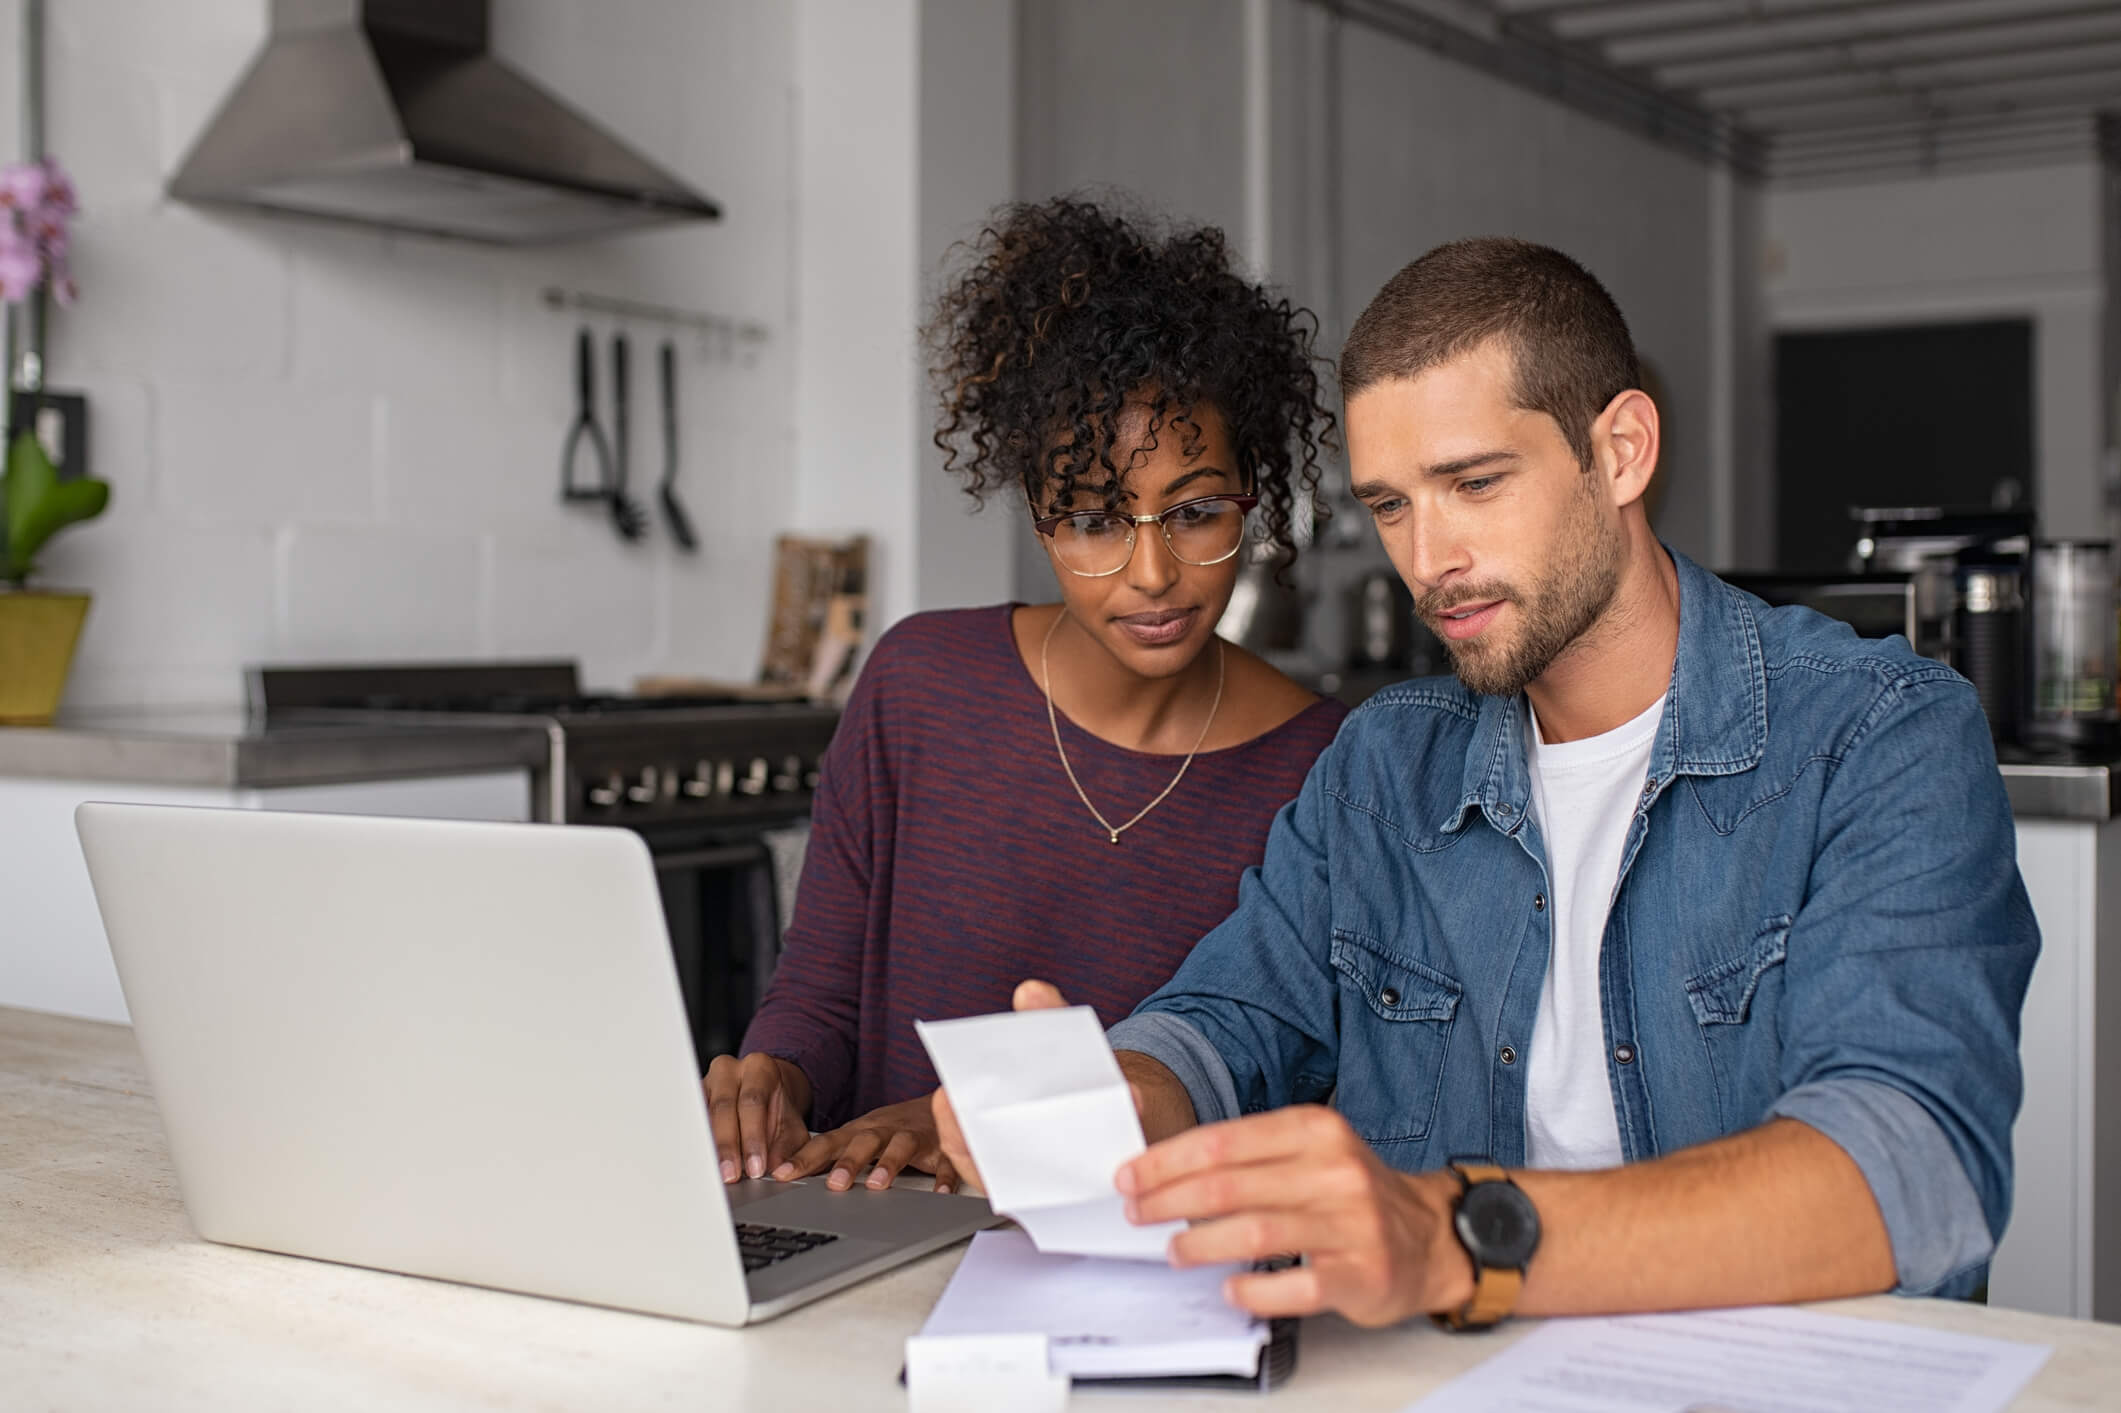 a couple looks at paperwork in front of a laptop